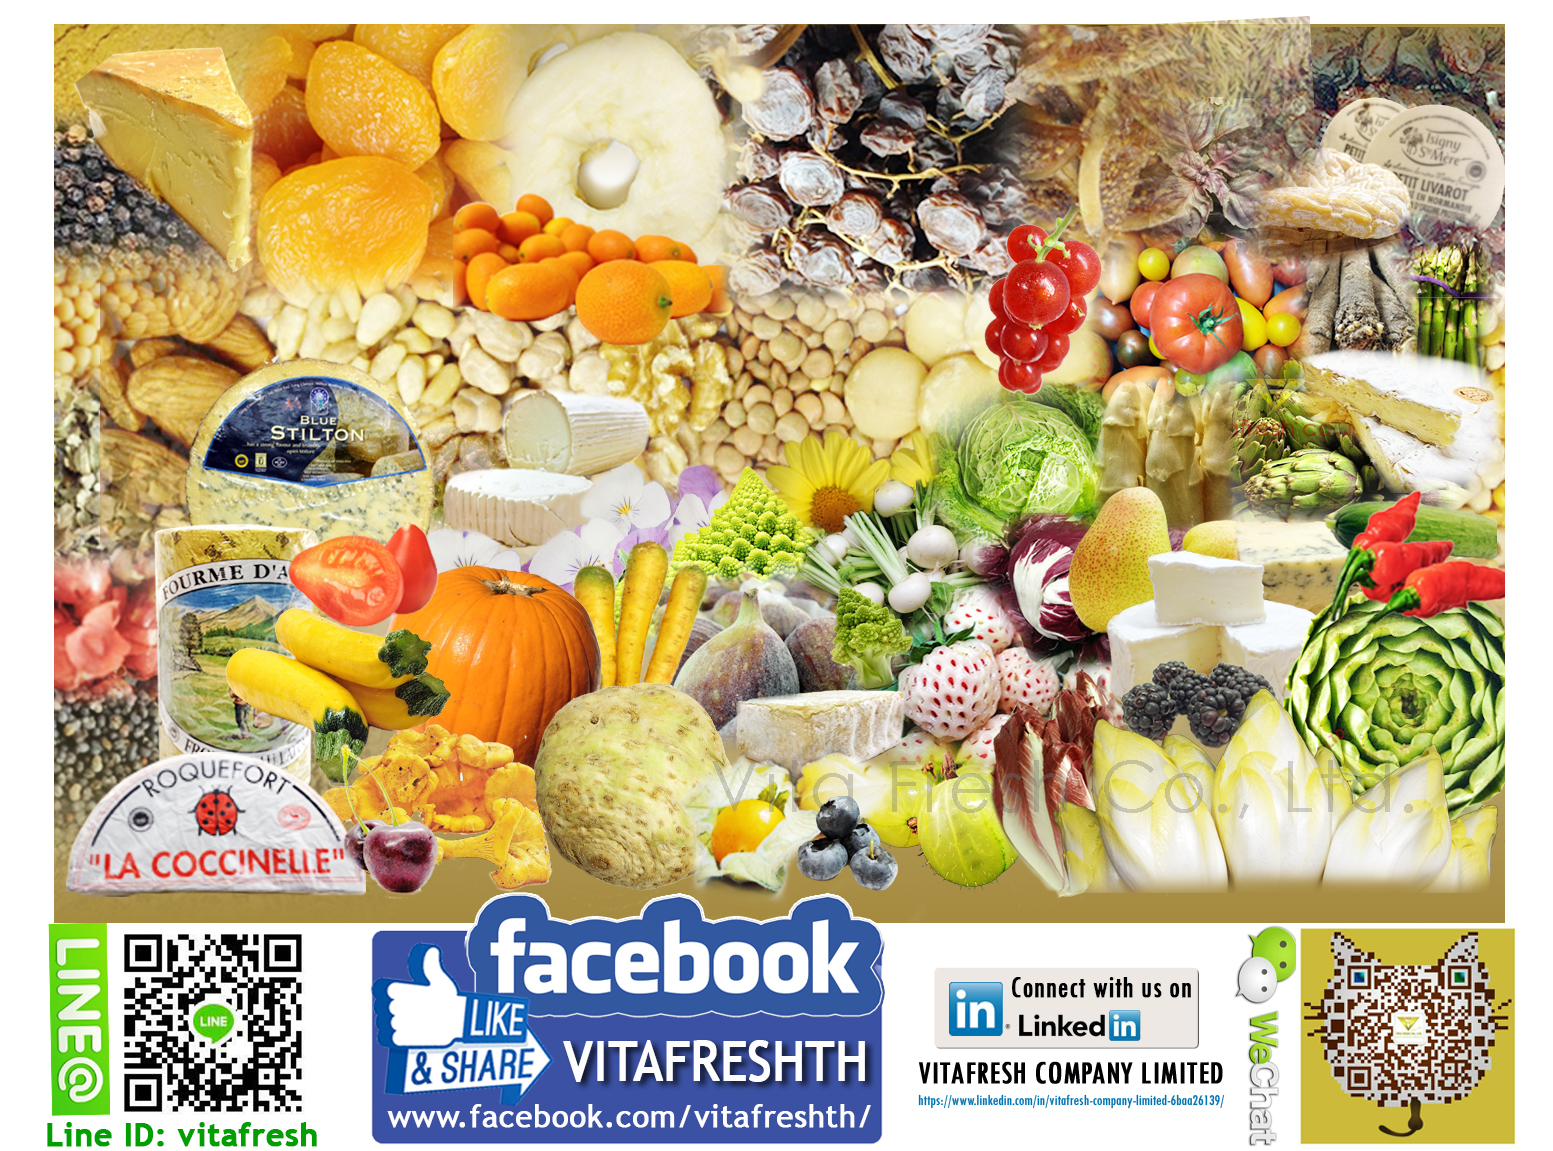 Vitafresh Finest imported food Thailand